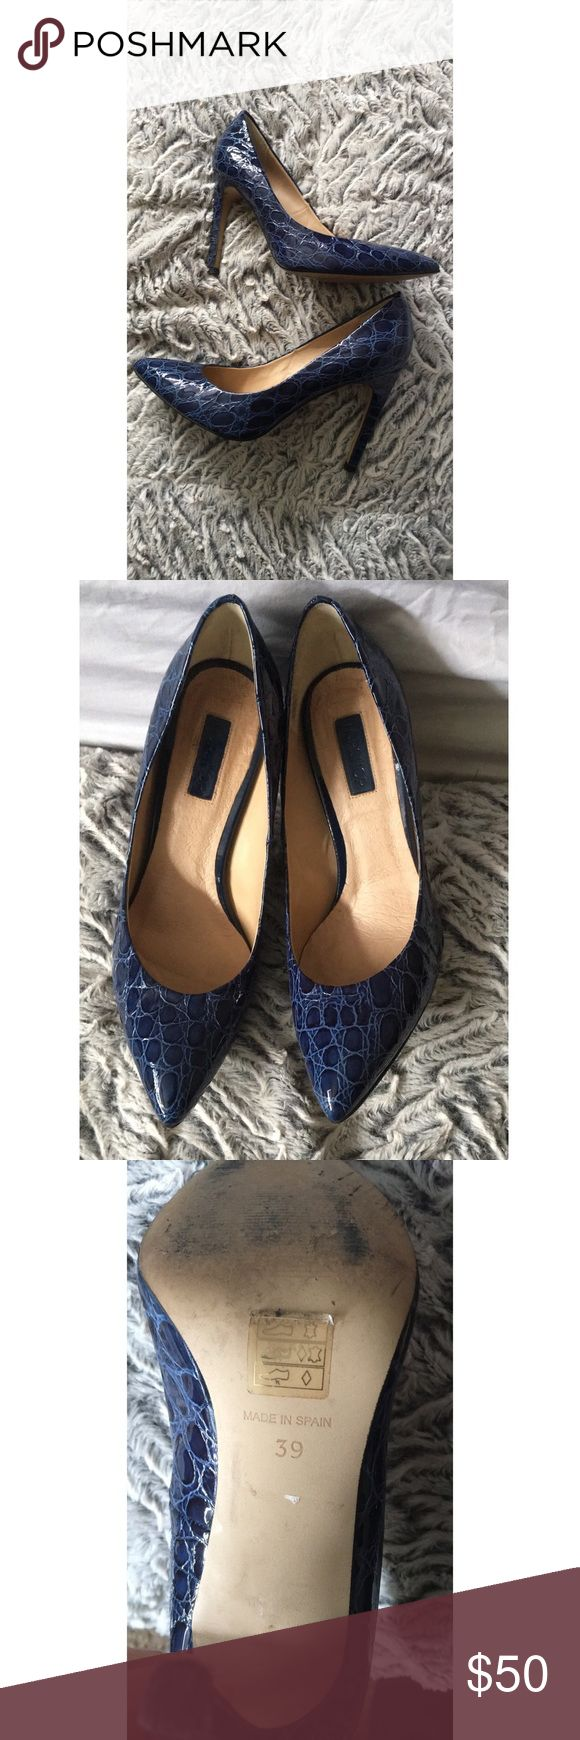 ✨✨TOPSHOP HEELS✨✨ Size 9 blue TOPSHOP heels. In great condition. Make an offer! Extremely comfortable!! Topshop Shoes Heels